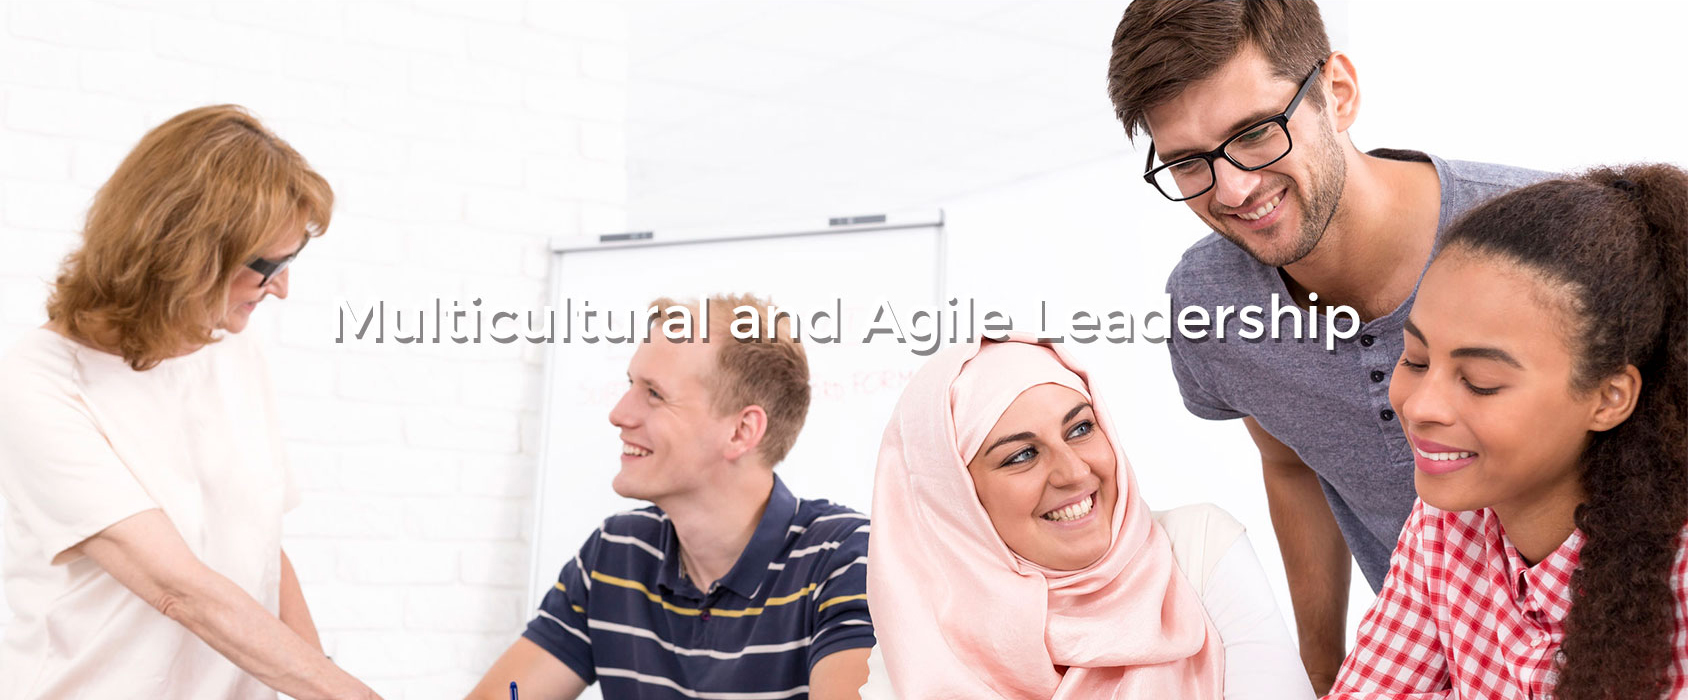 Multicultural and Agile Leadership